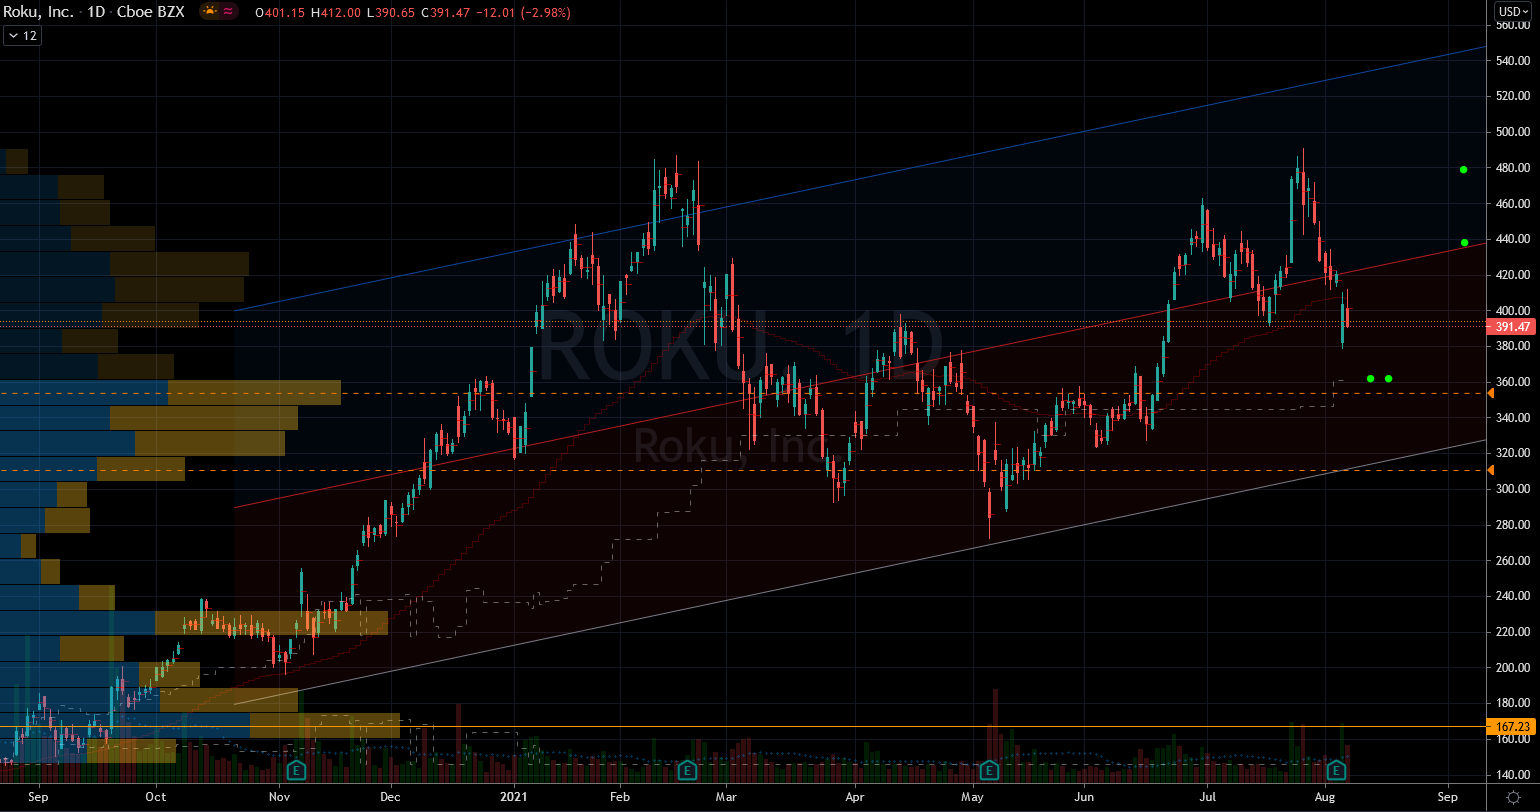 Roku Stock Chart Showing Potential Support Zone Below